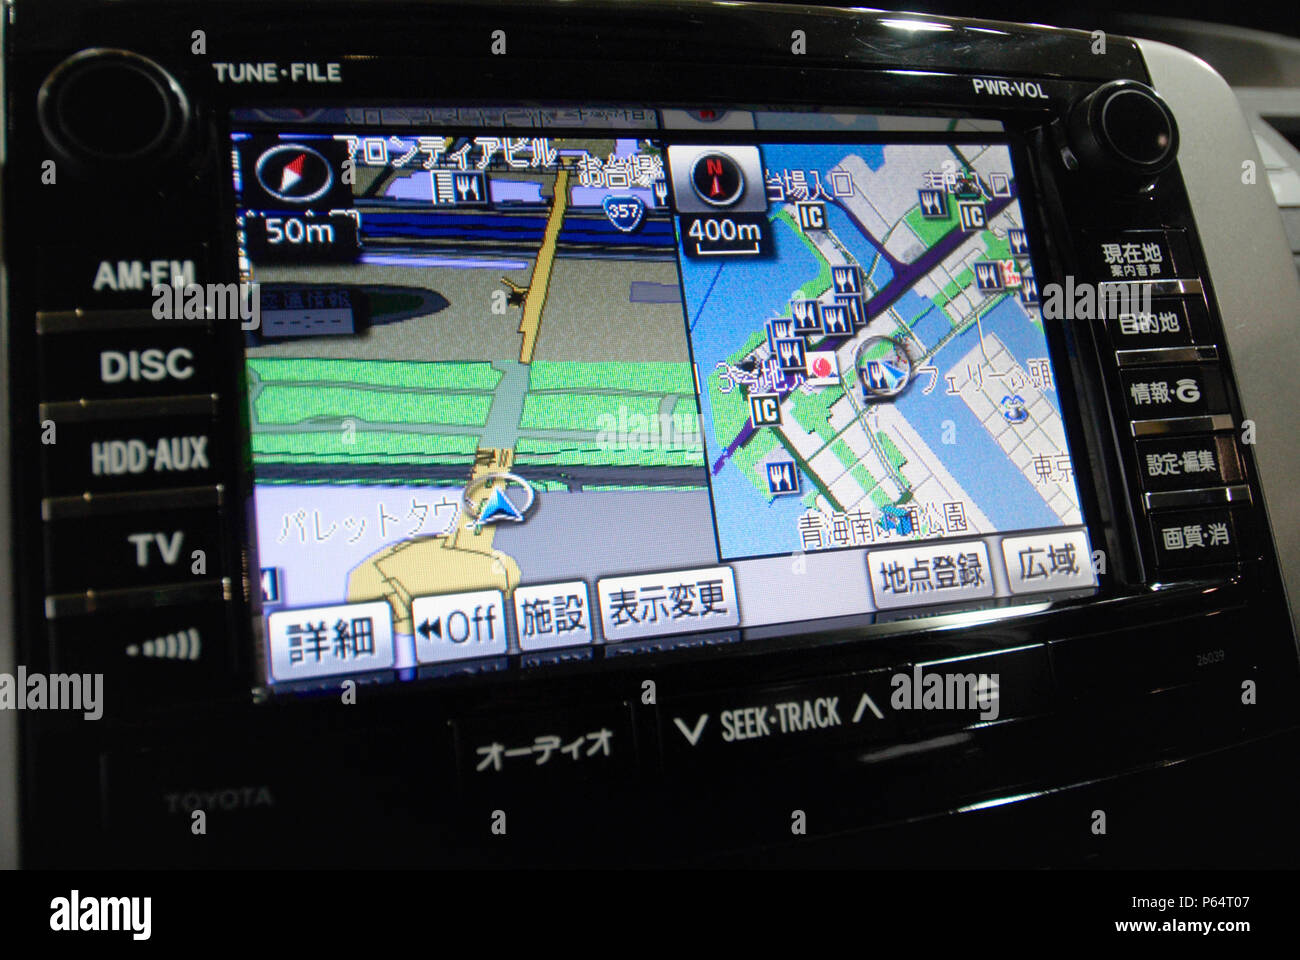 Japanese GPS satellite navigation system in new Toyota car - Stock Image